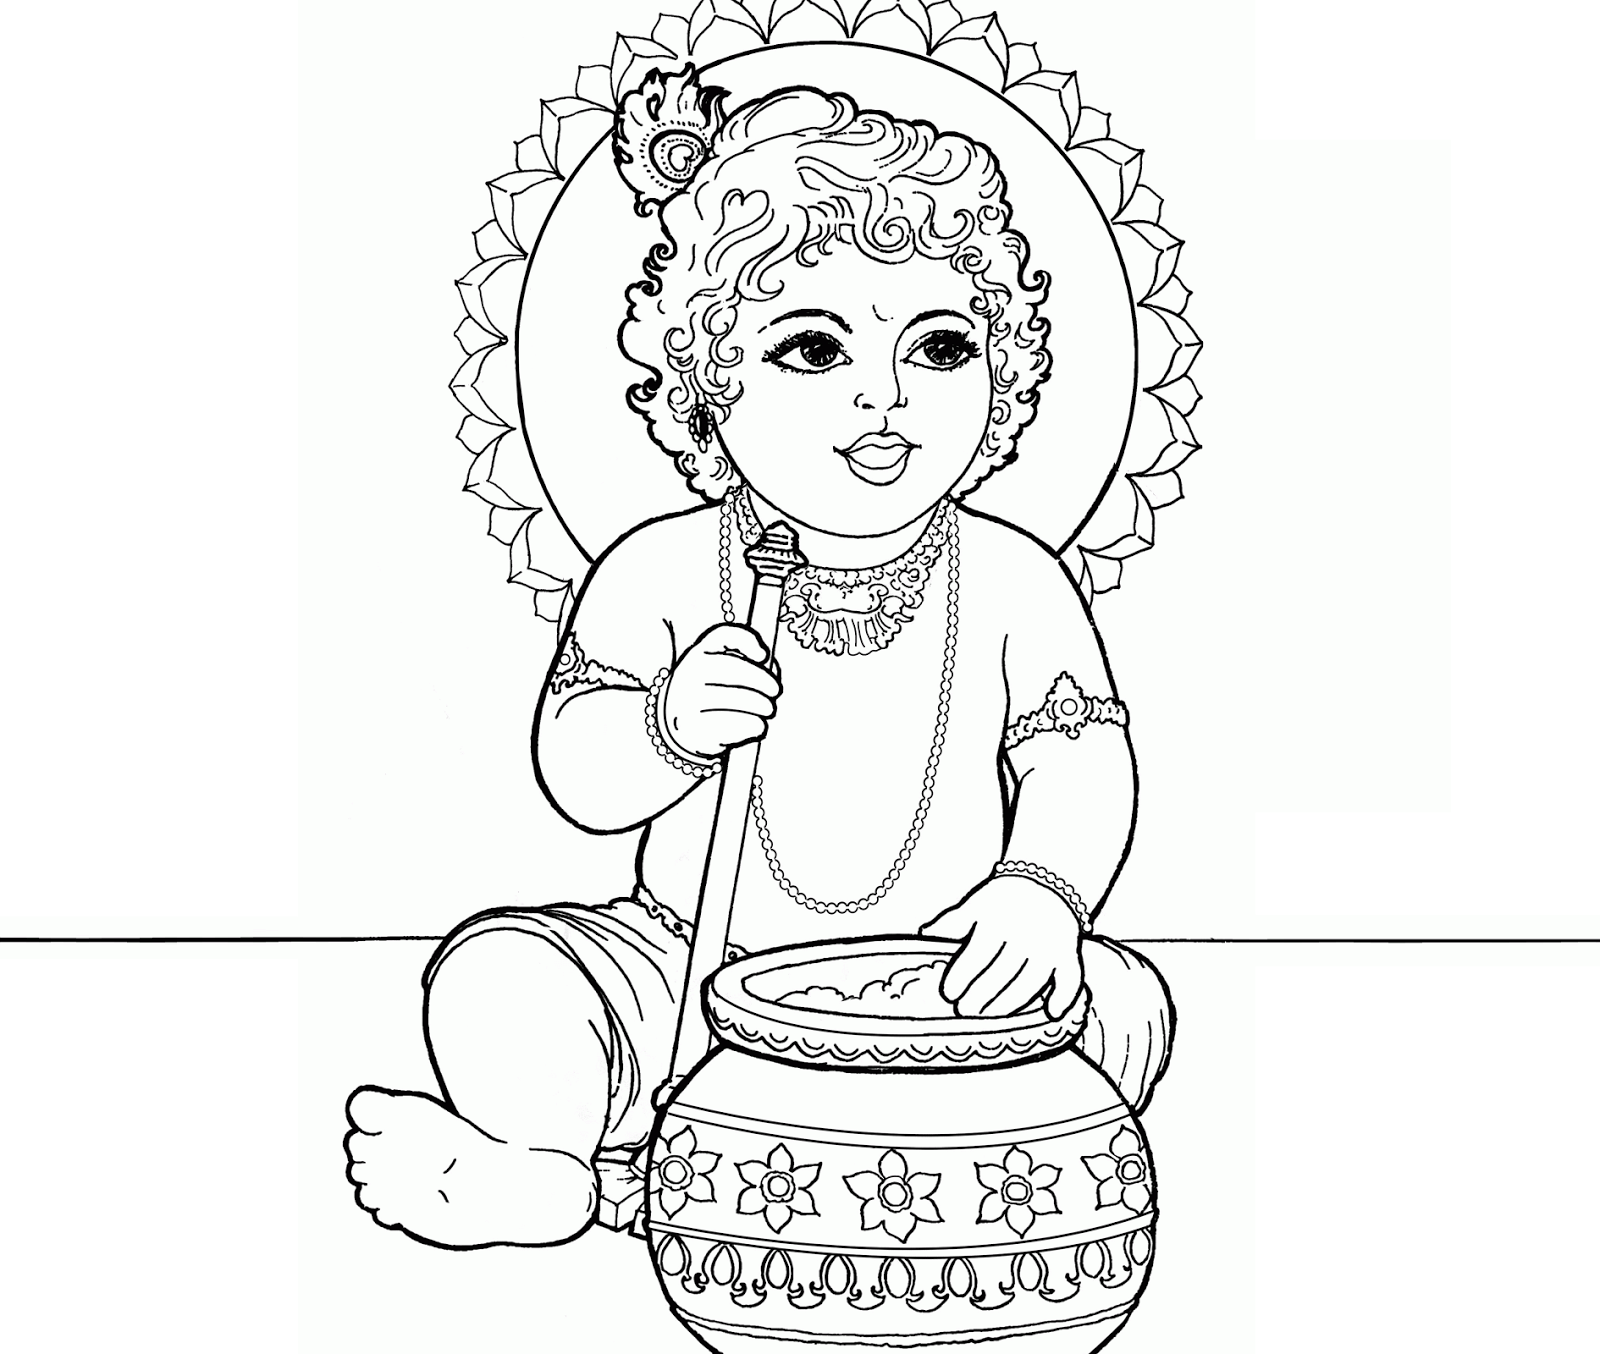 krishna pages for coloring - photo#11